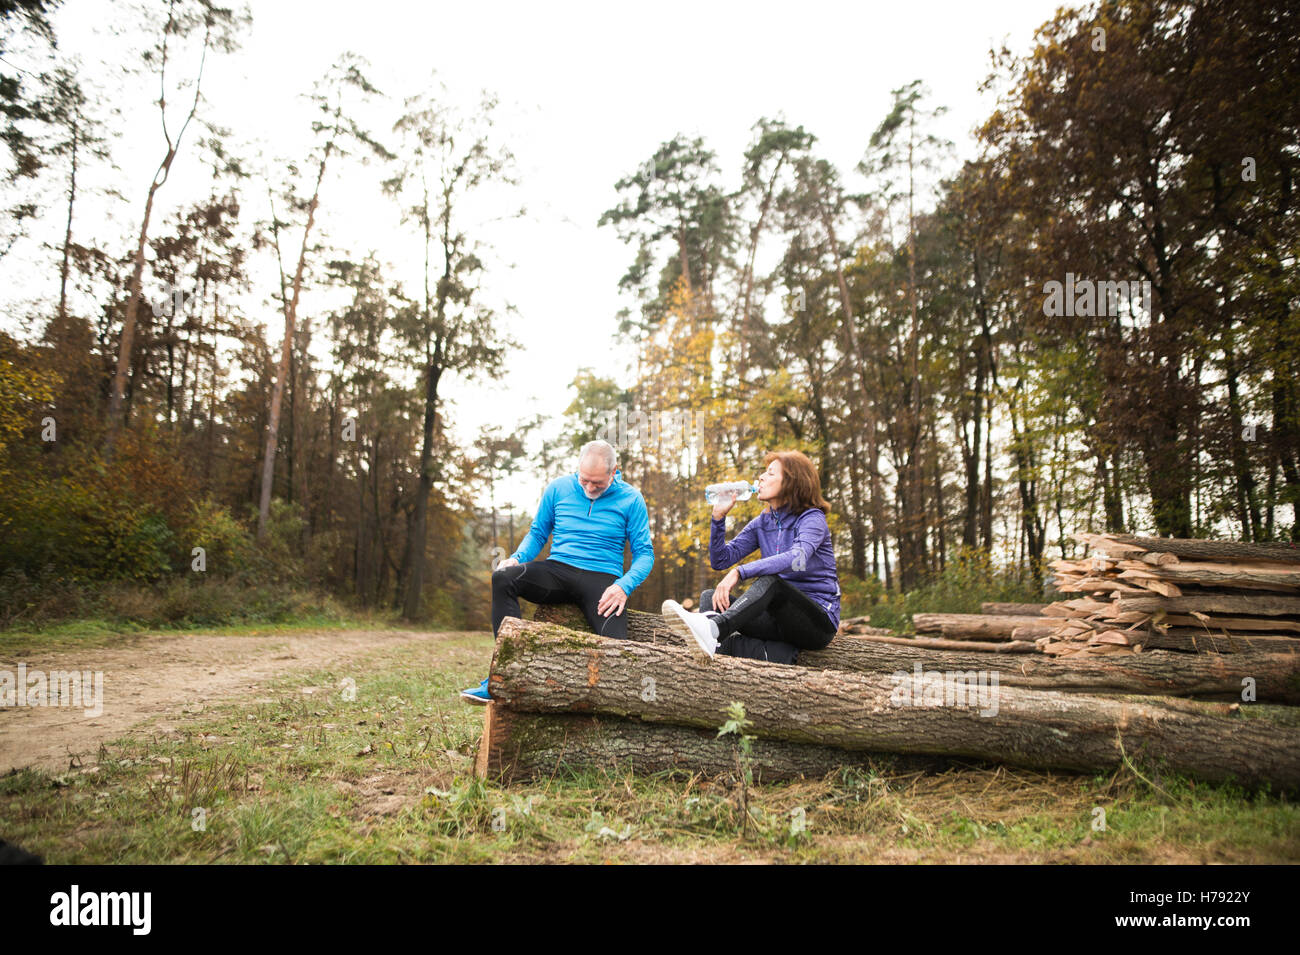 Senior runners sitting on wooden logs, resting, drinking water. - Stock Image